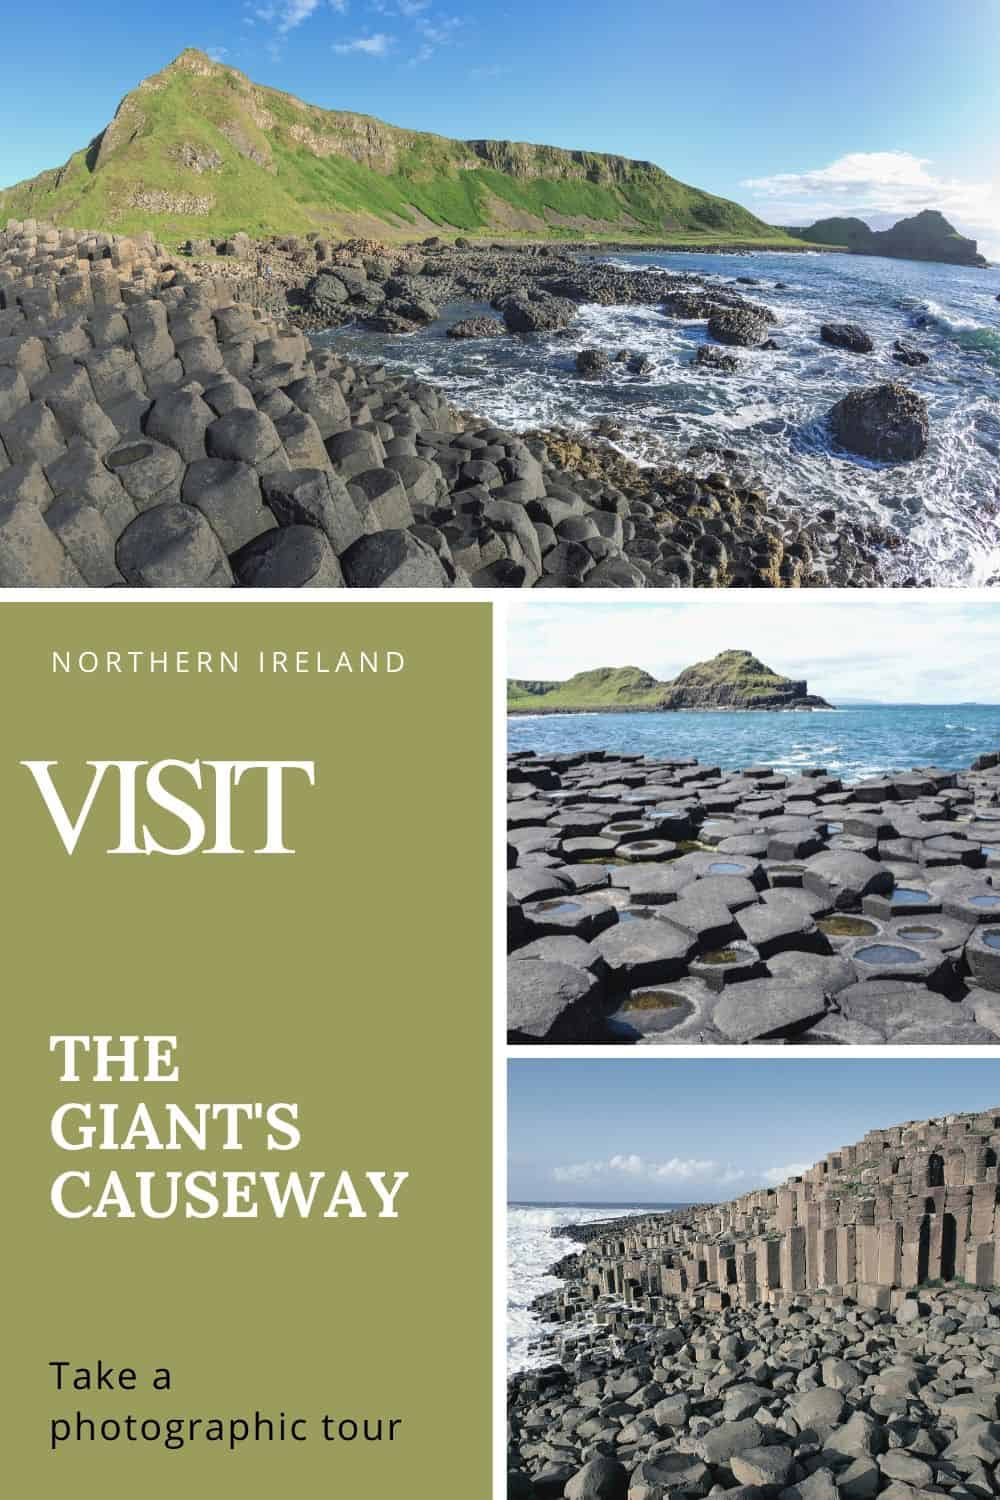 Picture collage featuring the Giant's Causeway on the coast of County Antrim in Northern Ireland